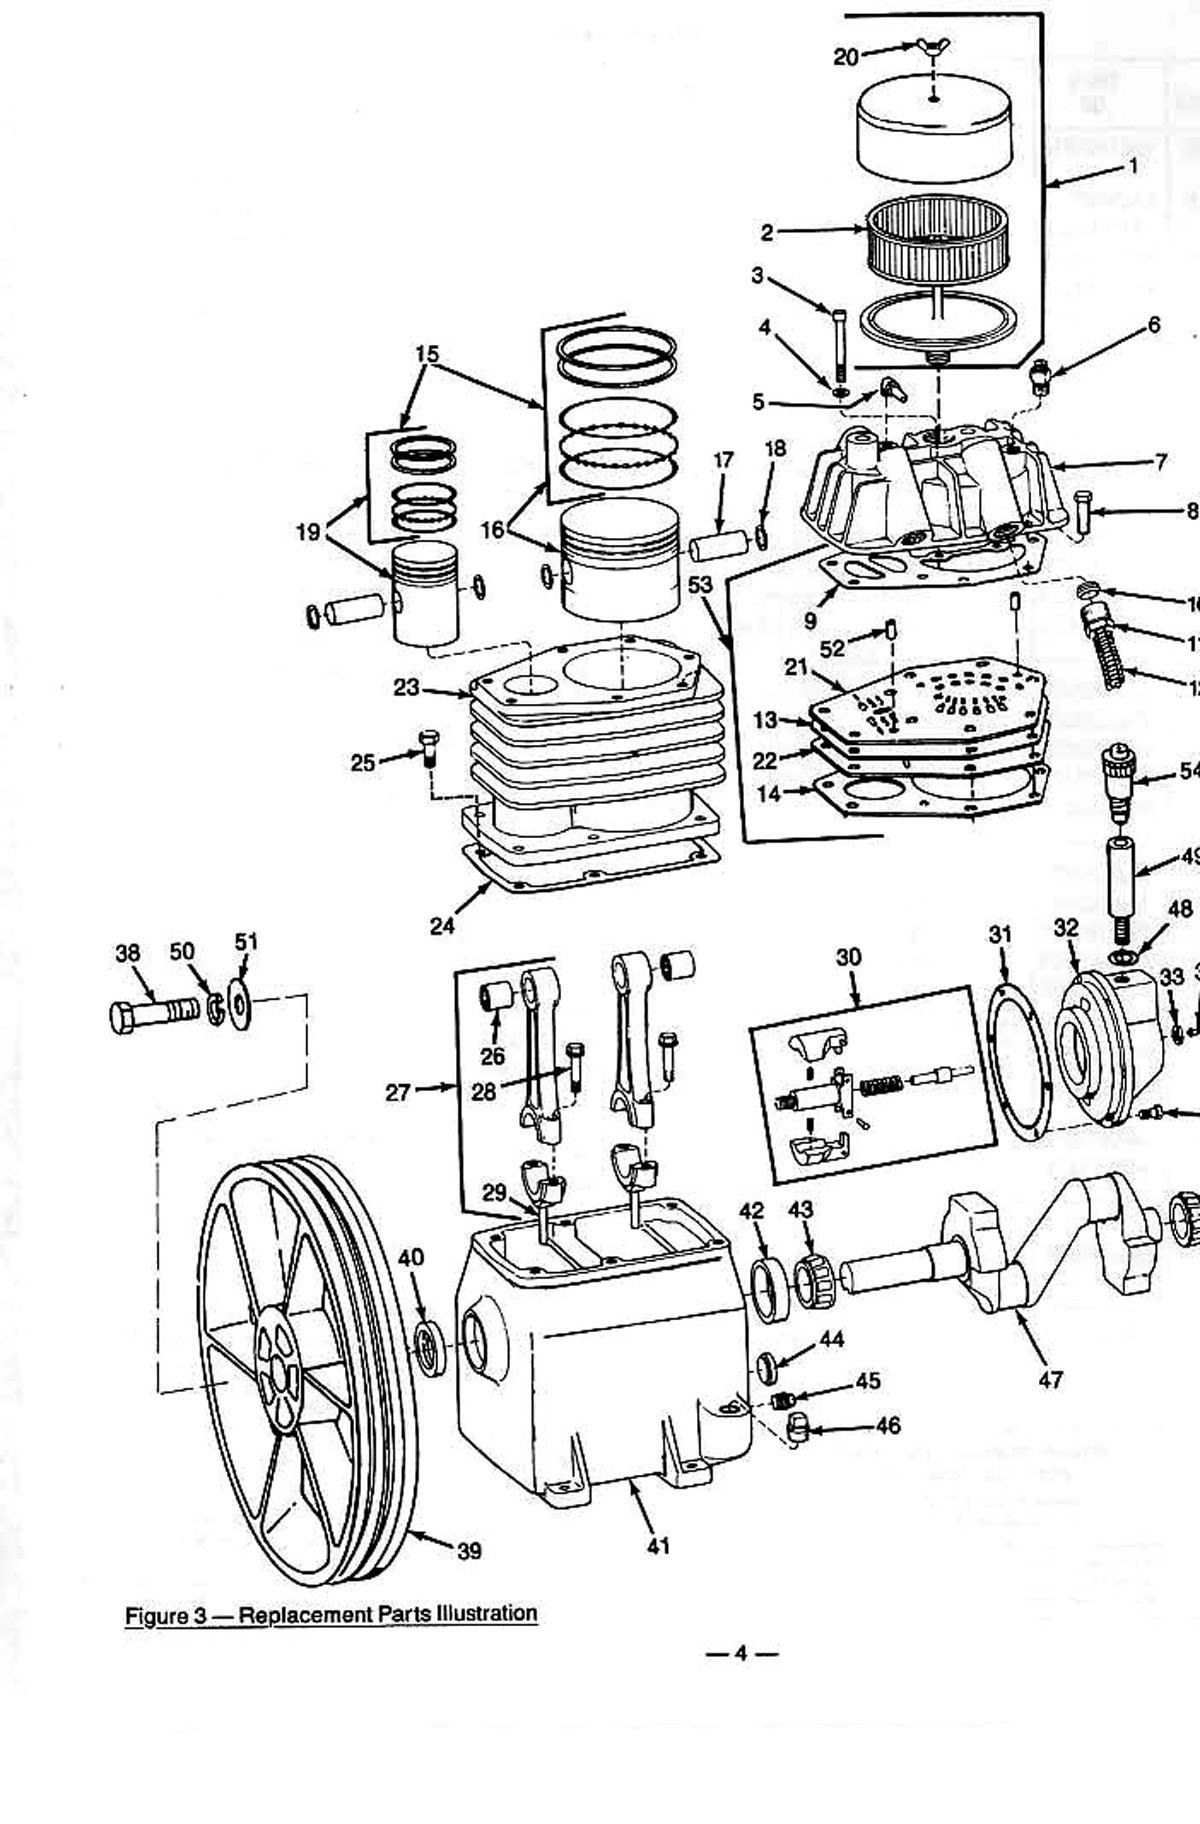 ... Engine Parts Diagram Mercury. Related Post